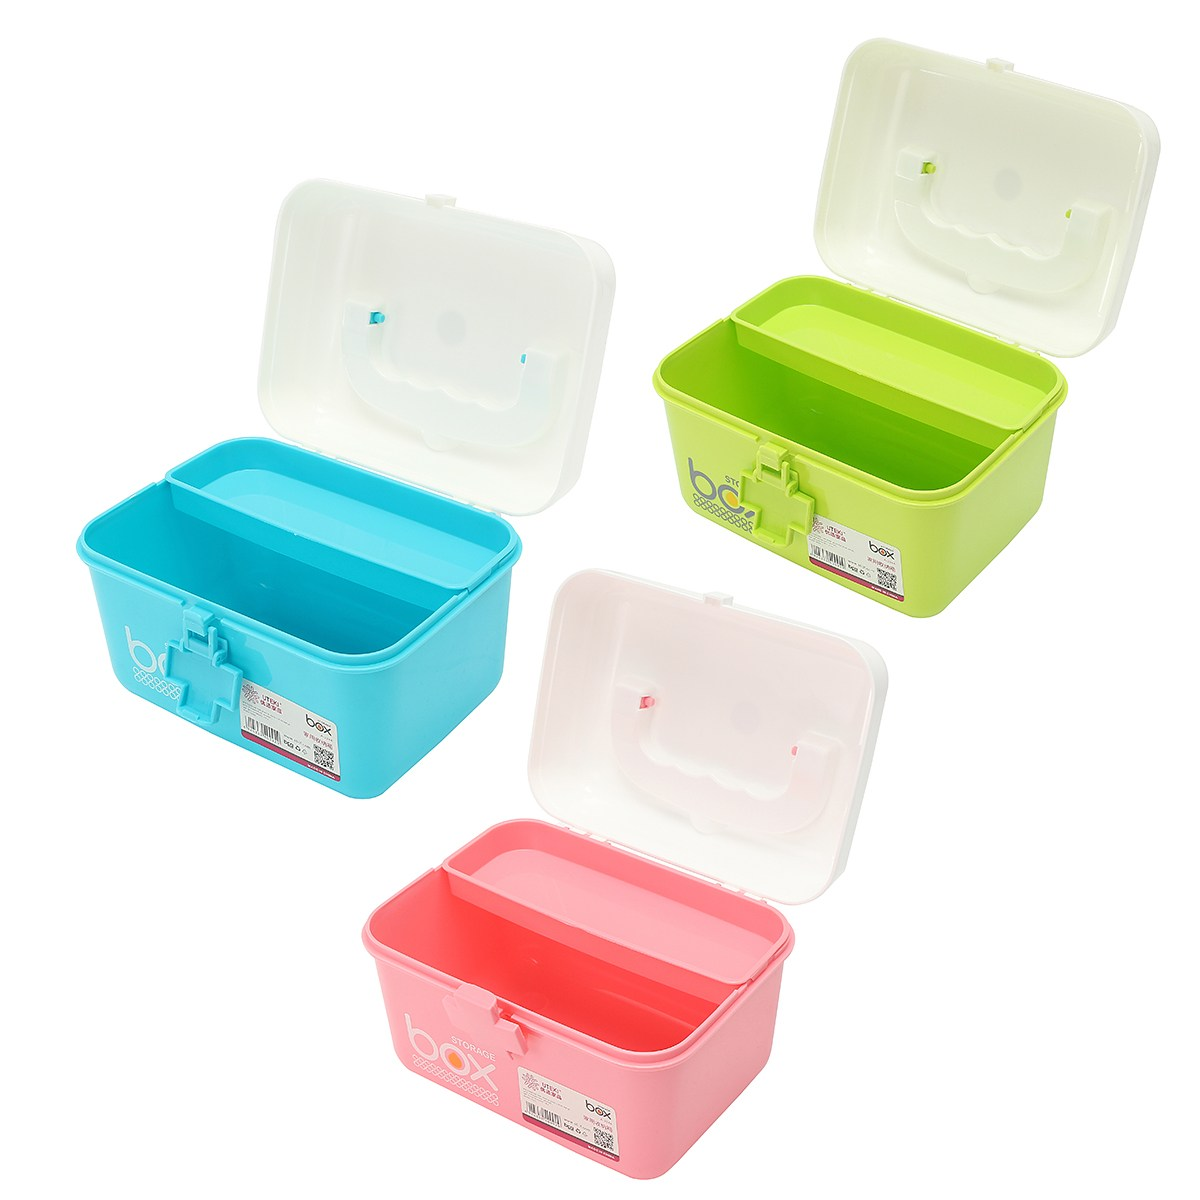 NEW Safurance Plastic 2 Layers Health Pill Medicine Drug Bottle First Aid Kit Case Storage Box Emergency Kits 4 section medicine pill storage box case green